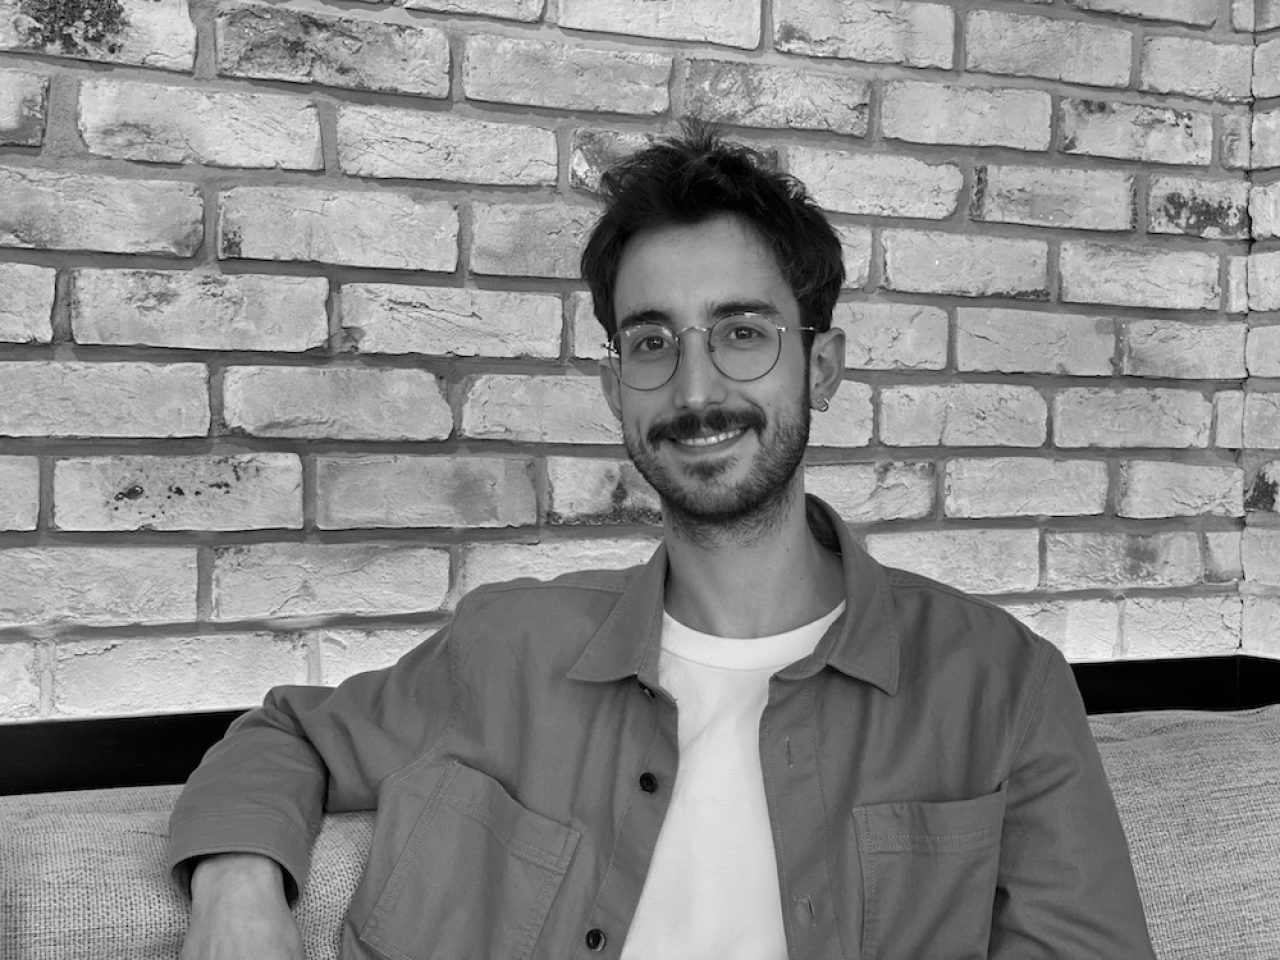 TFS welcomes the latest Sound team hire bringing on board Filipe Pereira as a new Mix Technician.